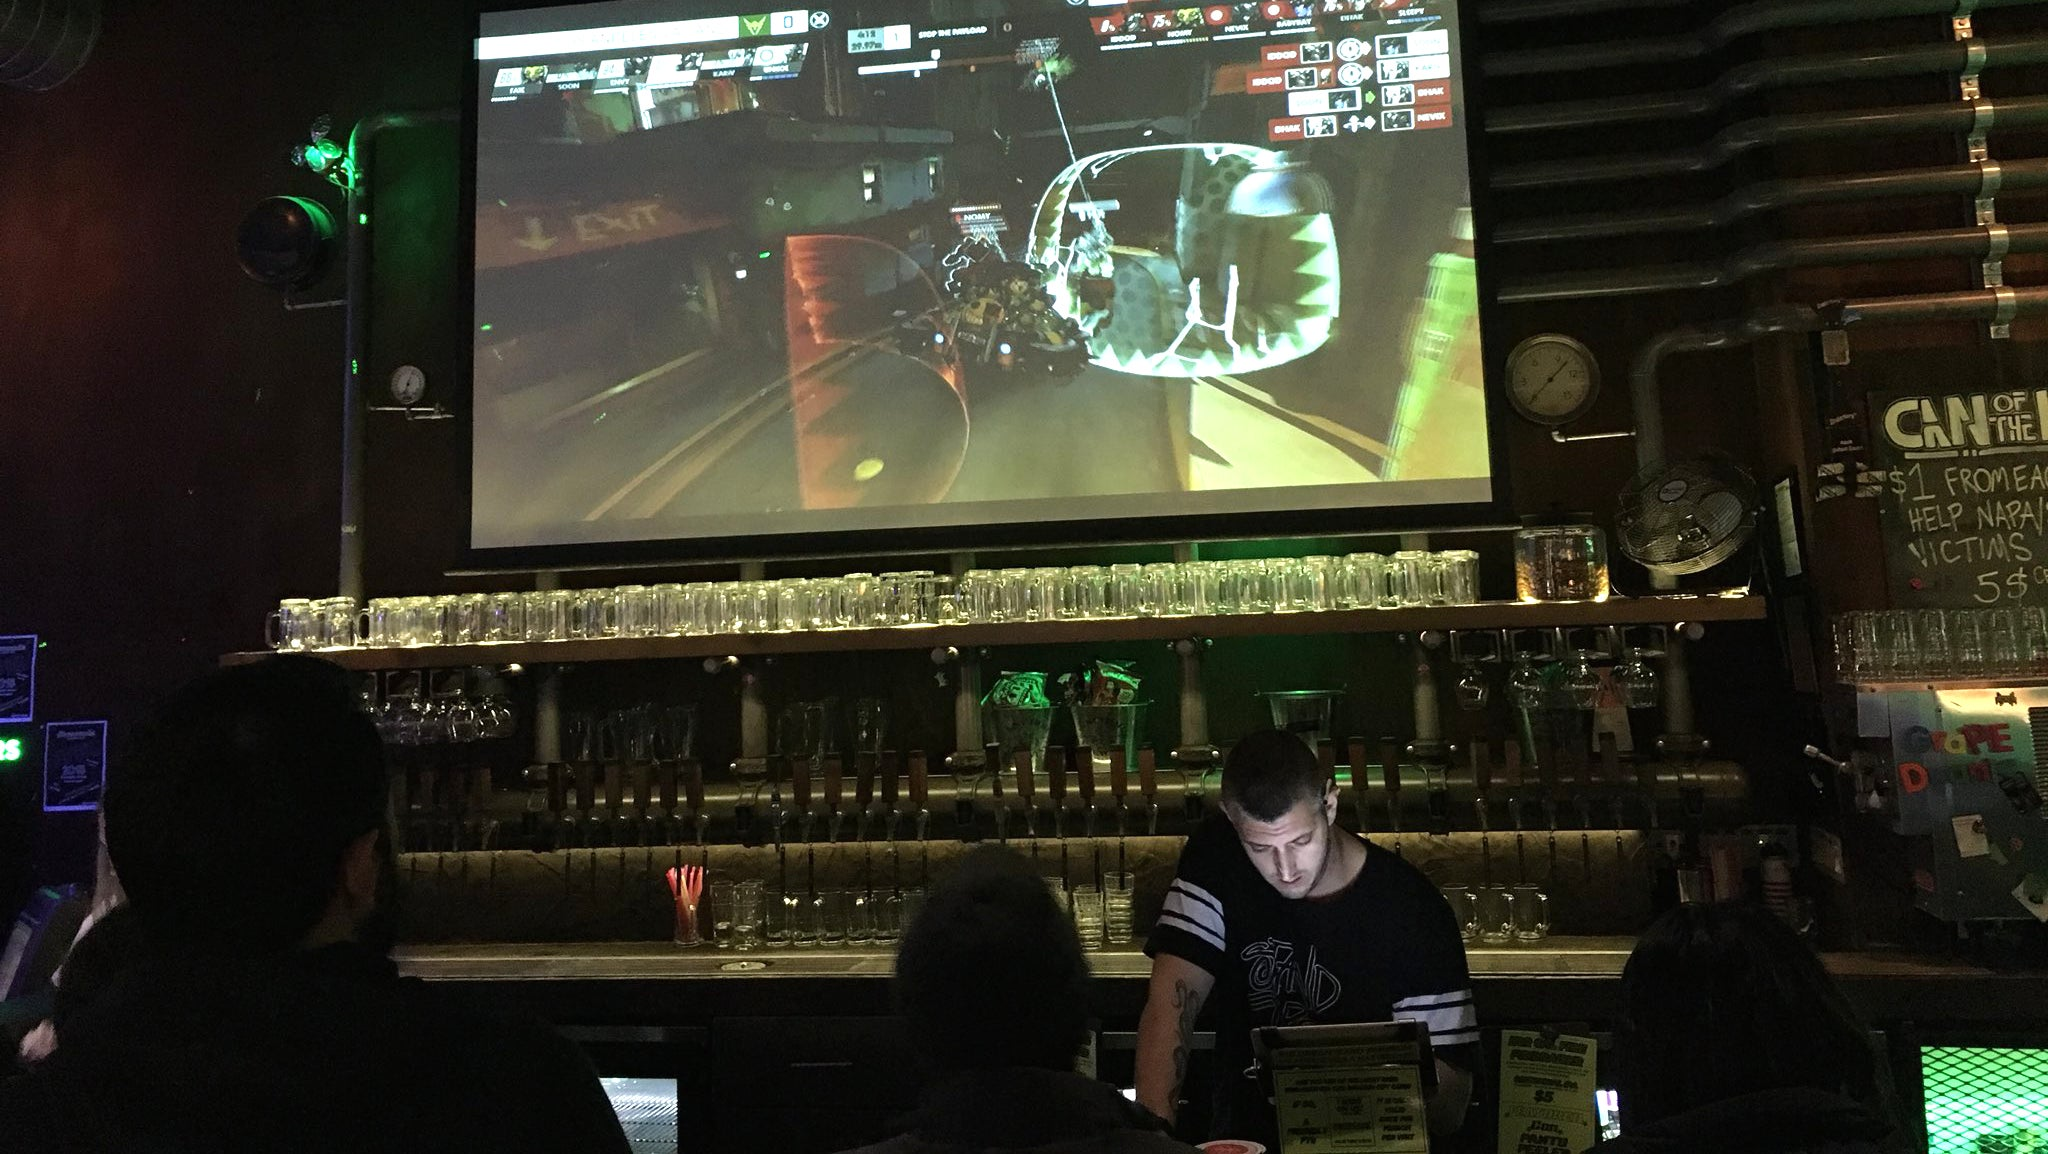 What It's Like To Watch Overwatch At A Bar